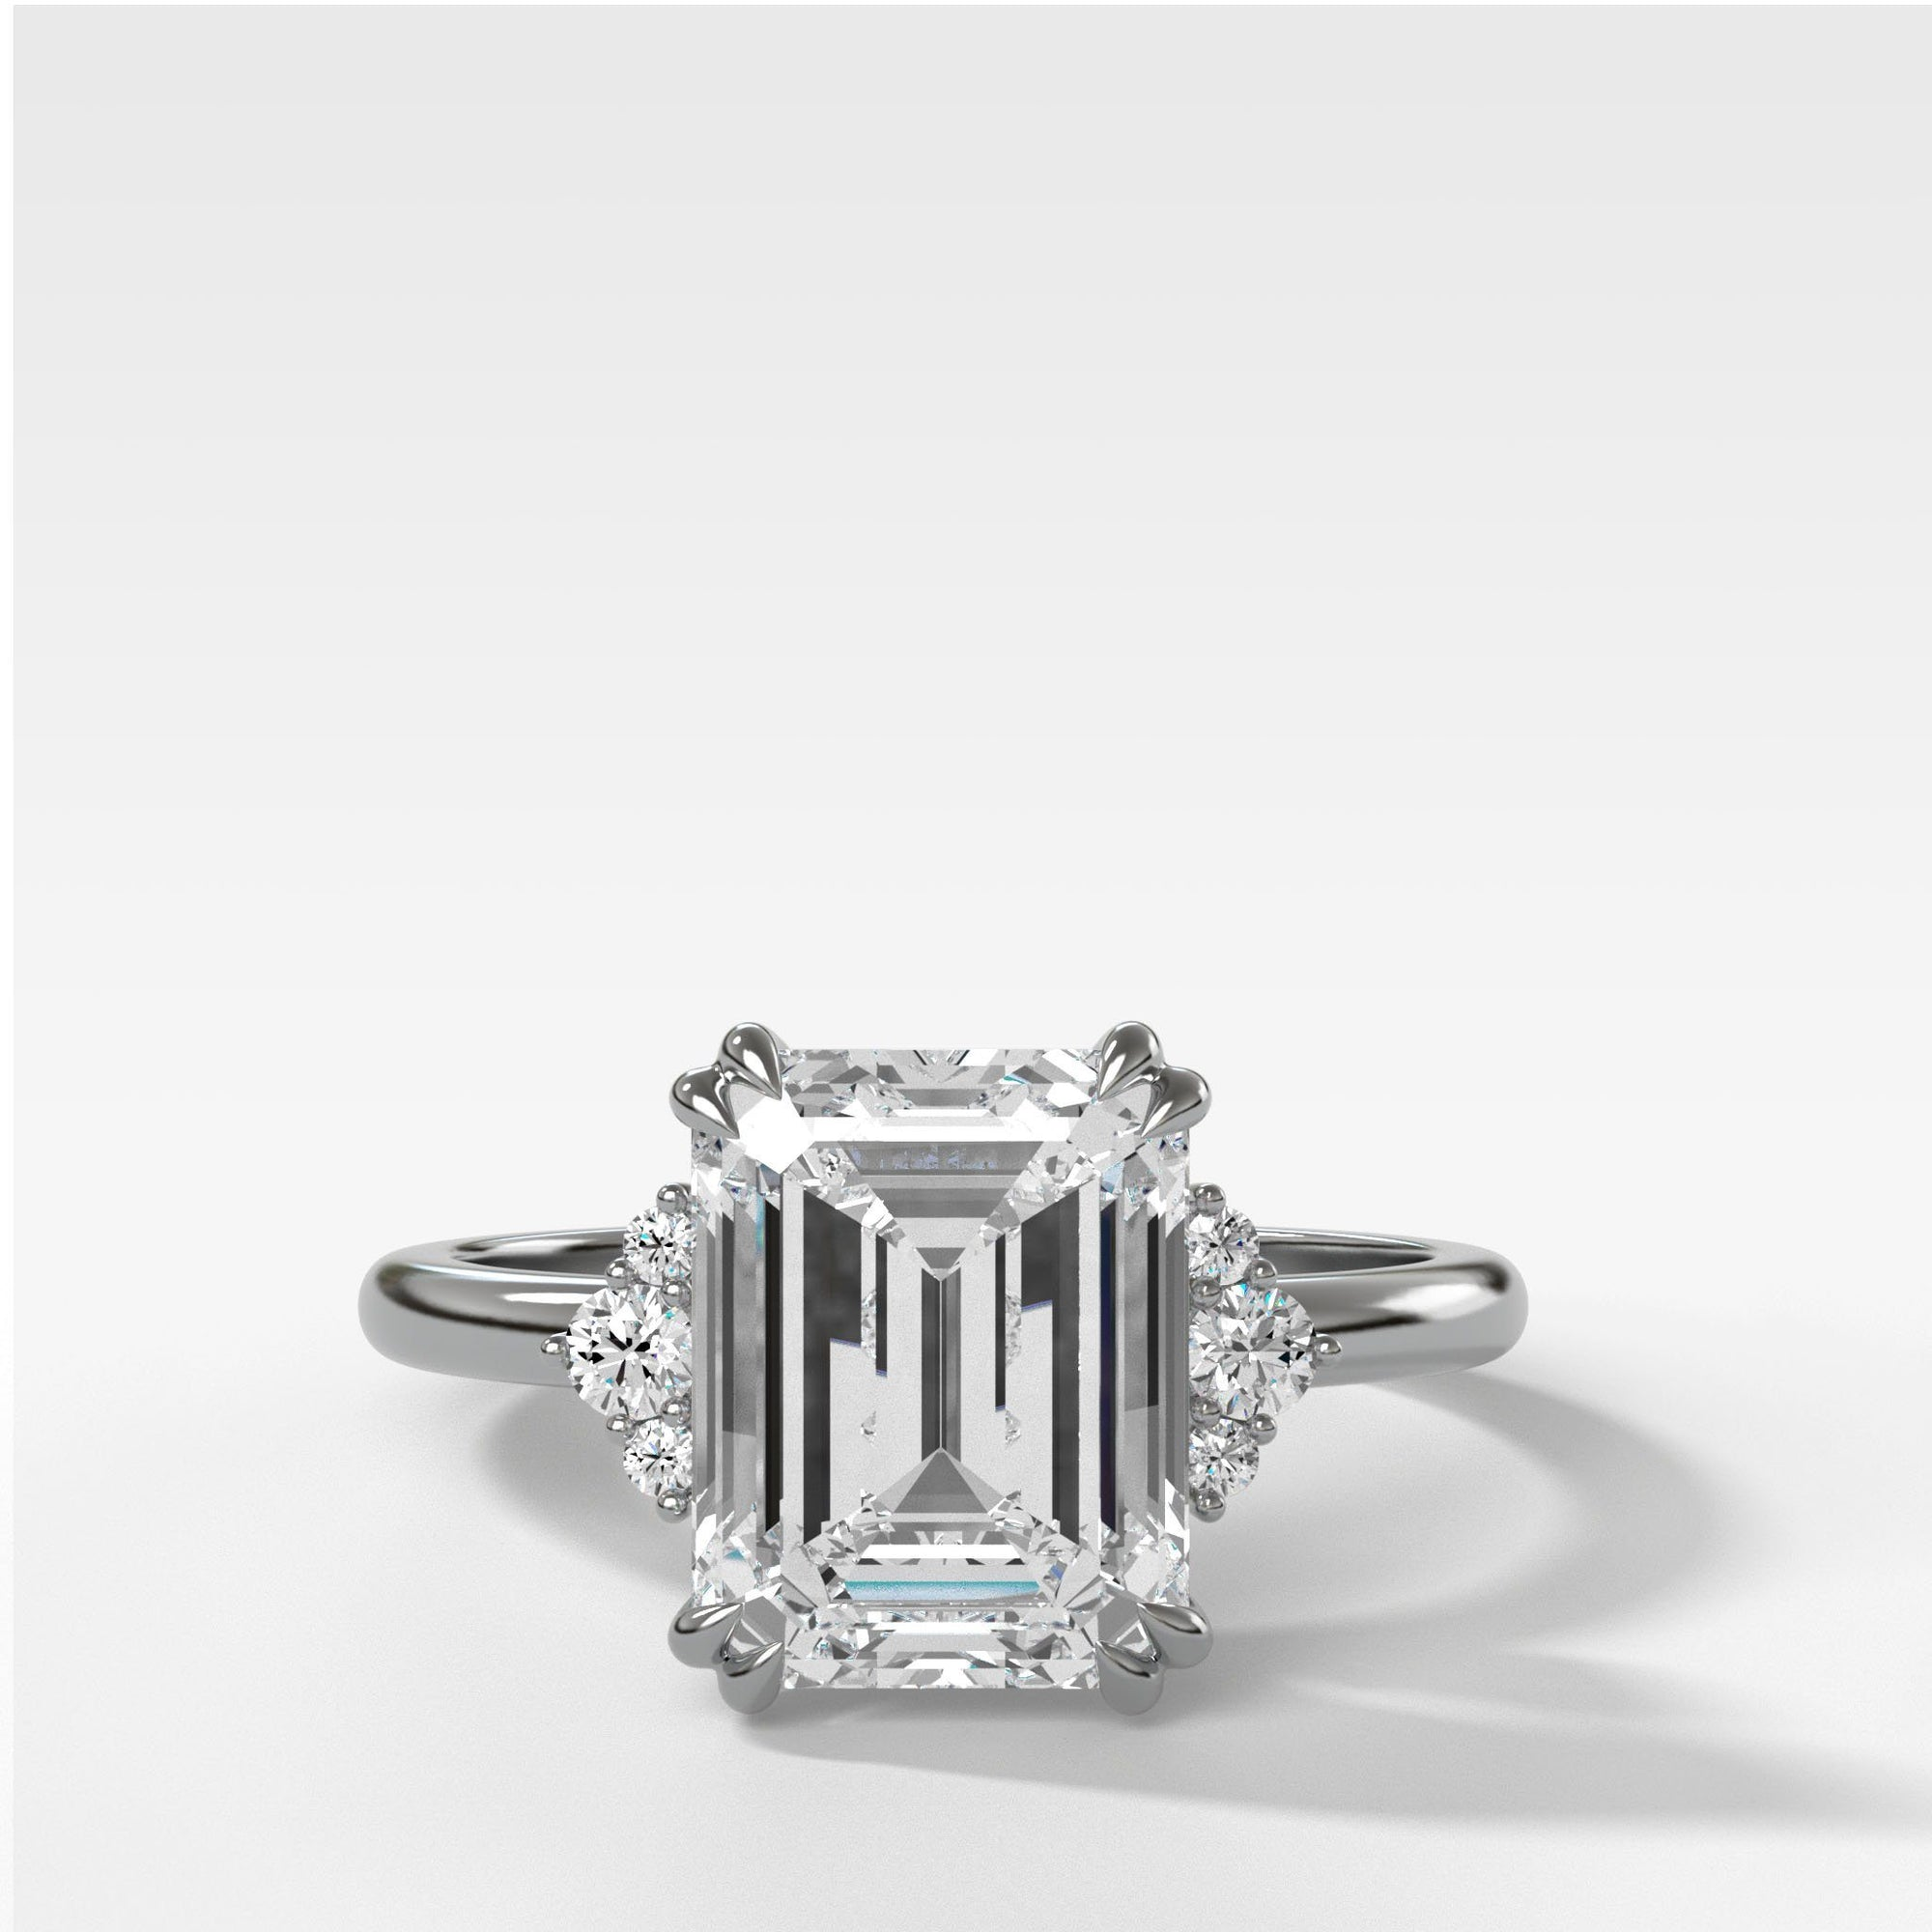 Signature Cluster Engagement Ring With Emerald Cut In Yellow Gold By Good Stone